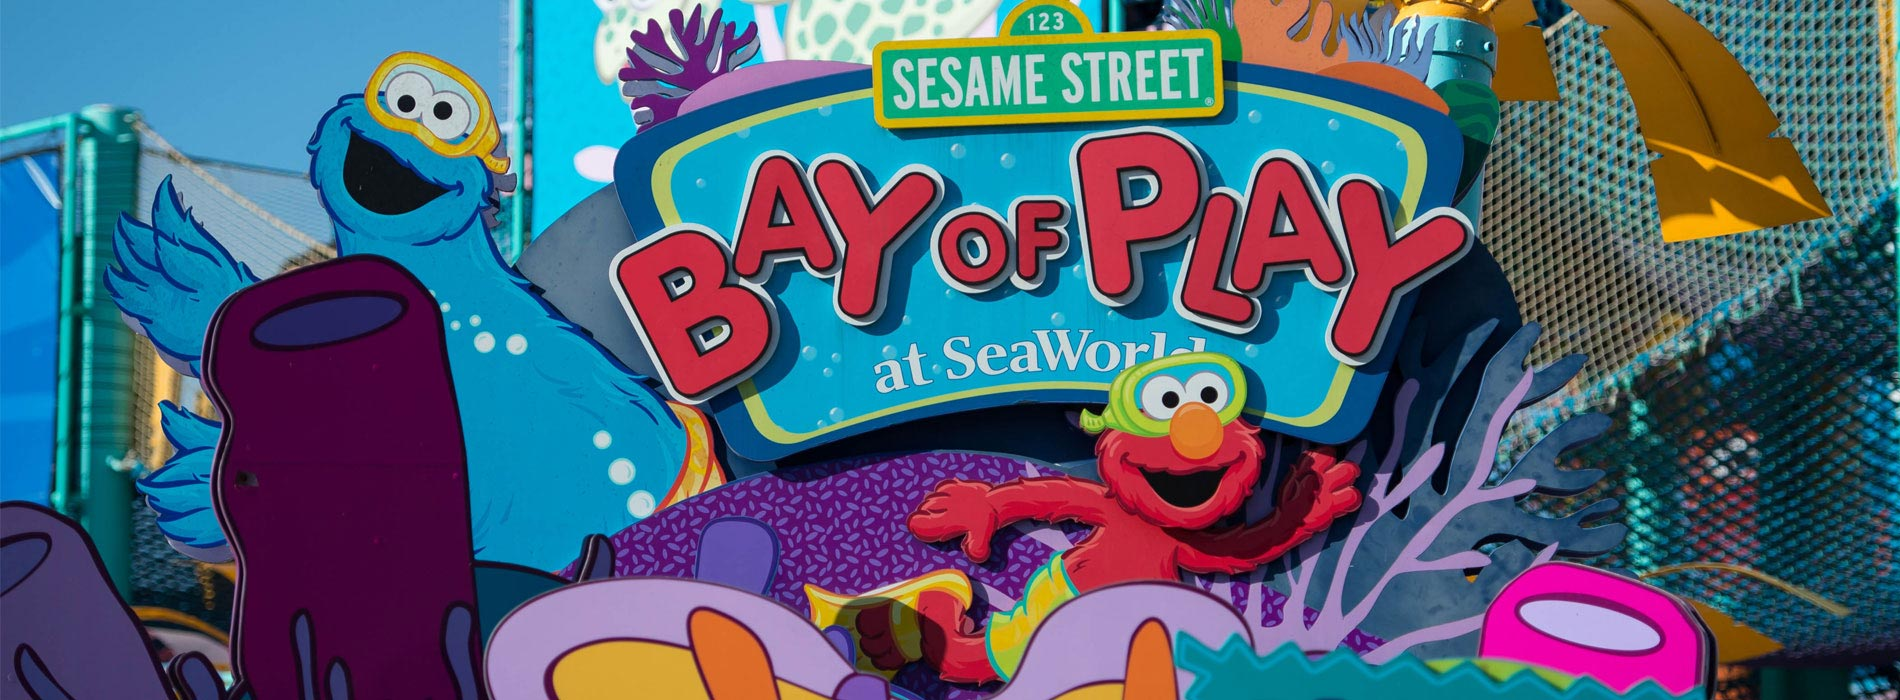 Sesame Street Bay of Play